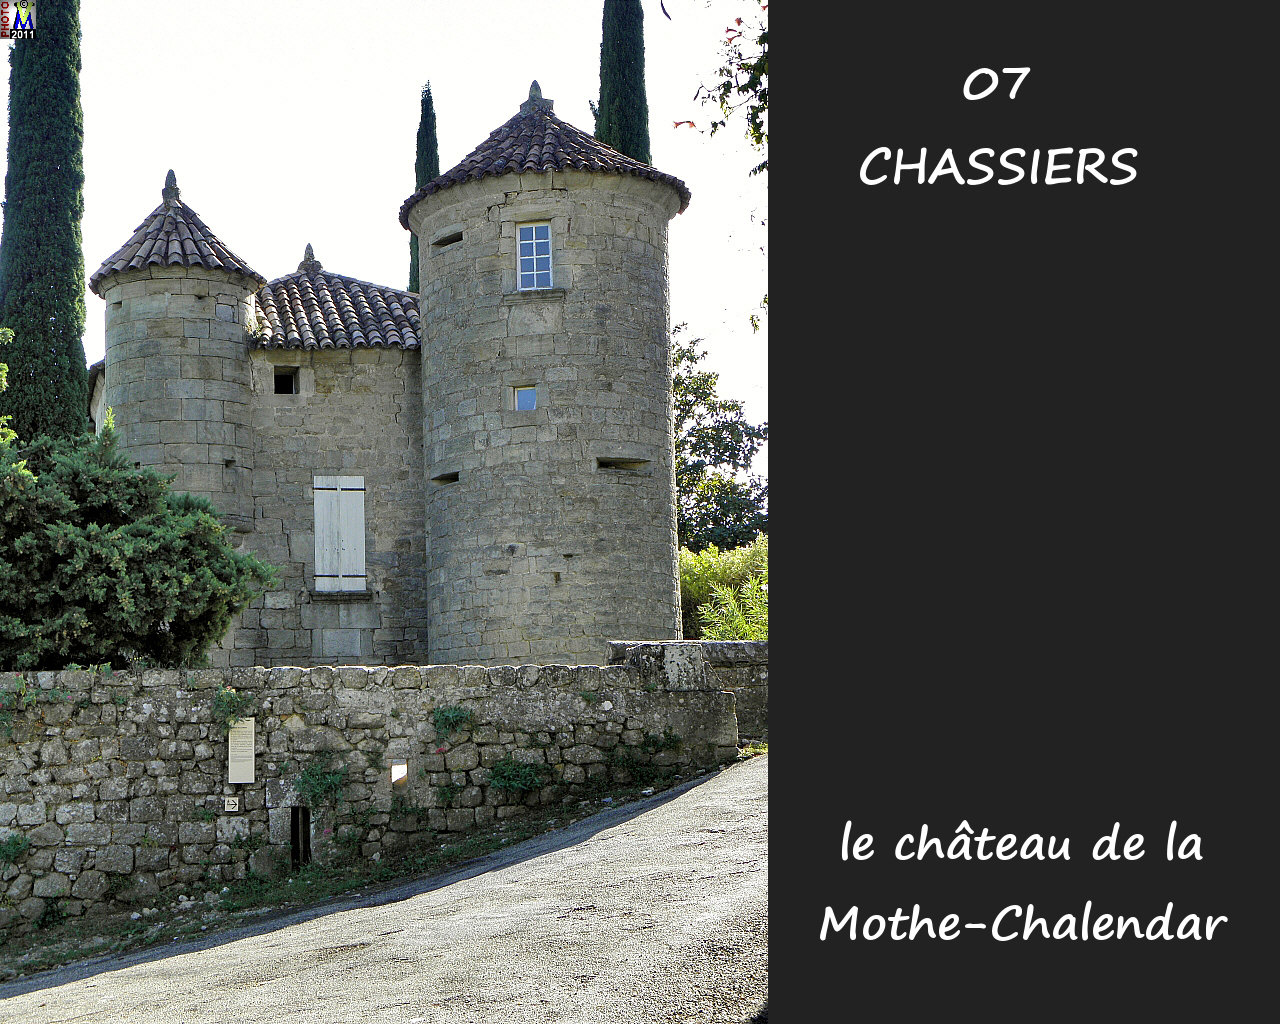 07CHASSIERS_chateauMC_104.jpg